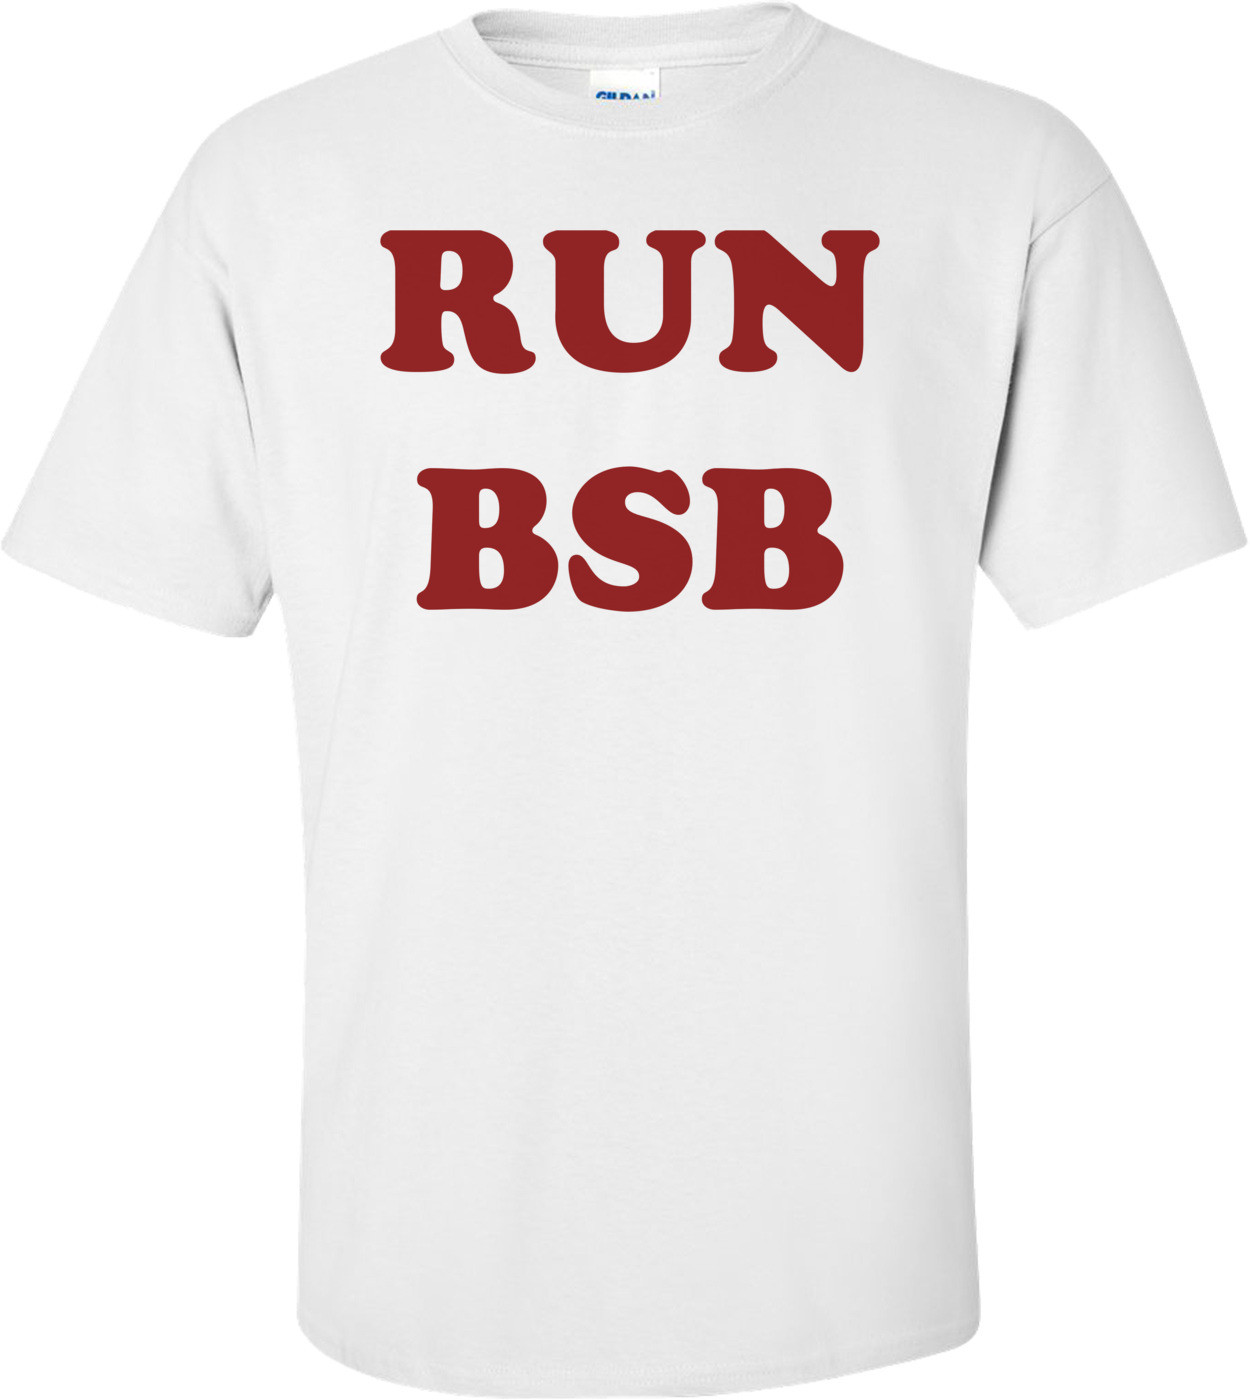 RUN BSB Shirt